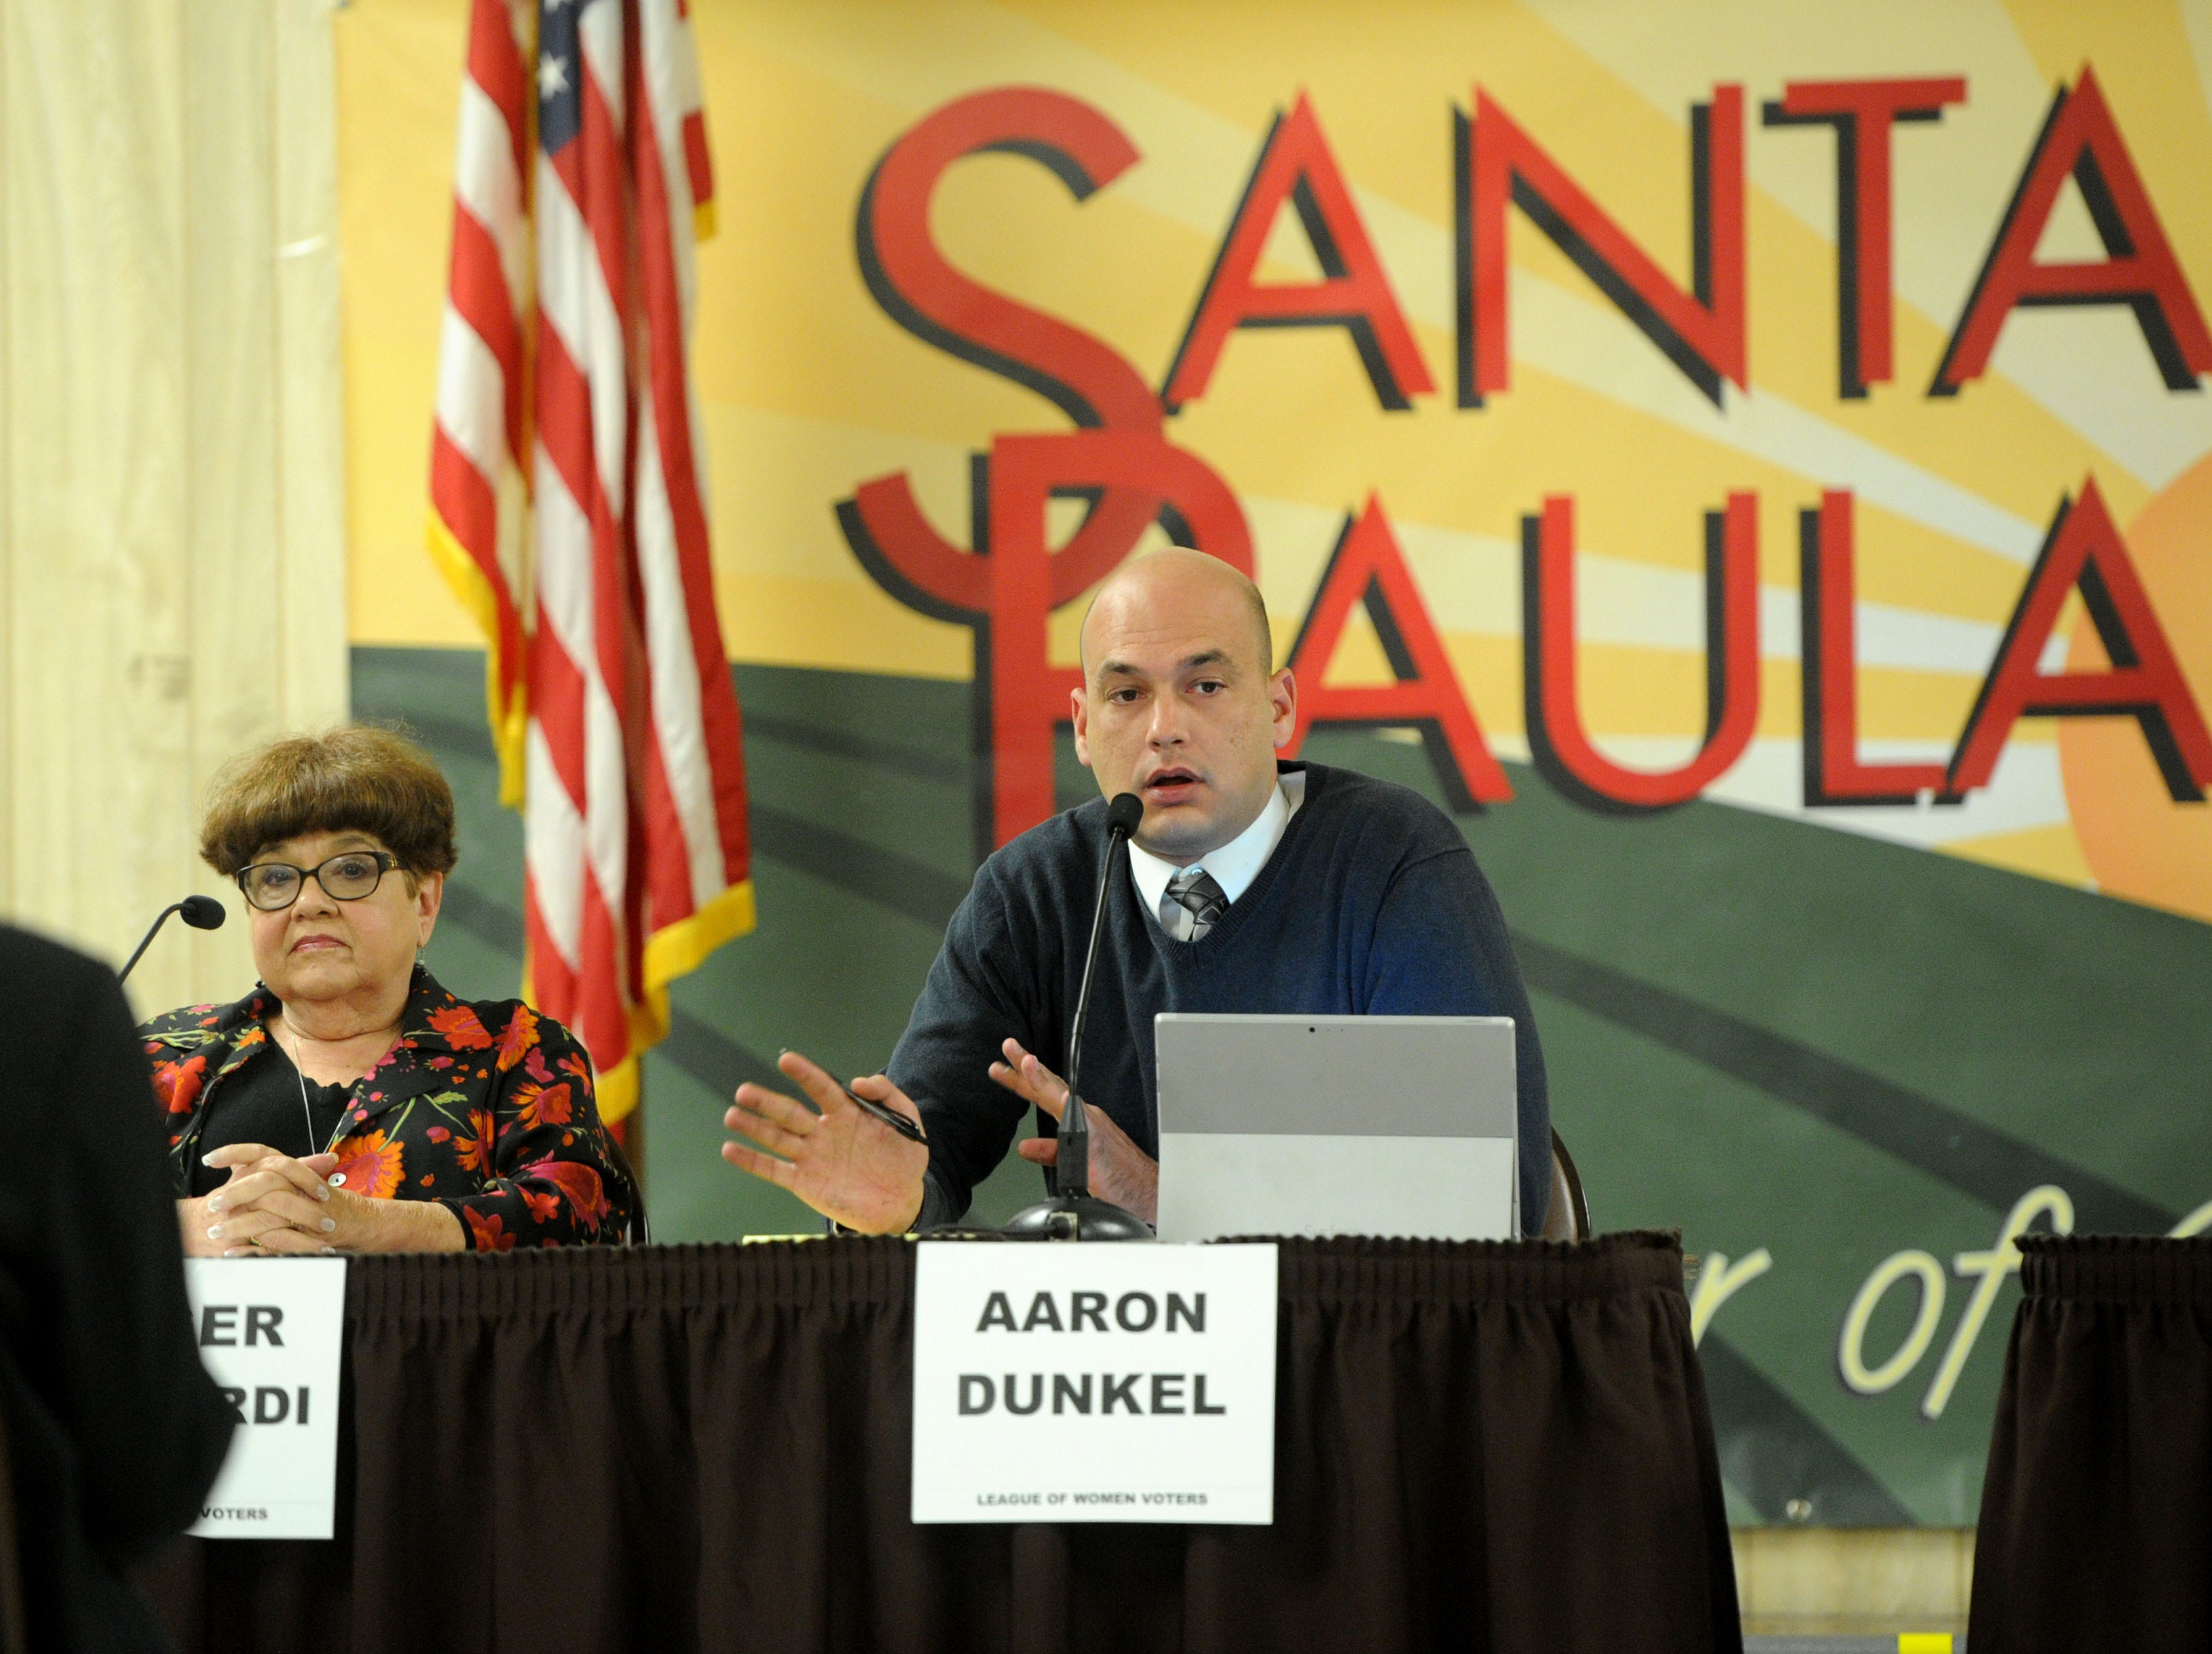 Aaron Dunkel answers a question about how to pay for a new park as Ginger Gherardi listens on. The two are among six candidates vying for three seats on the Santa Paula City Council.